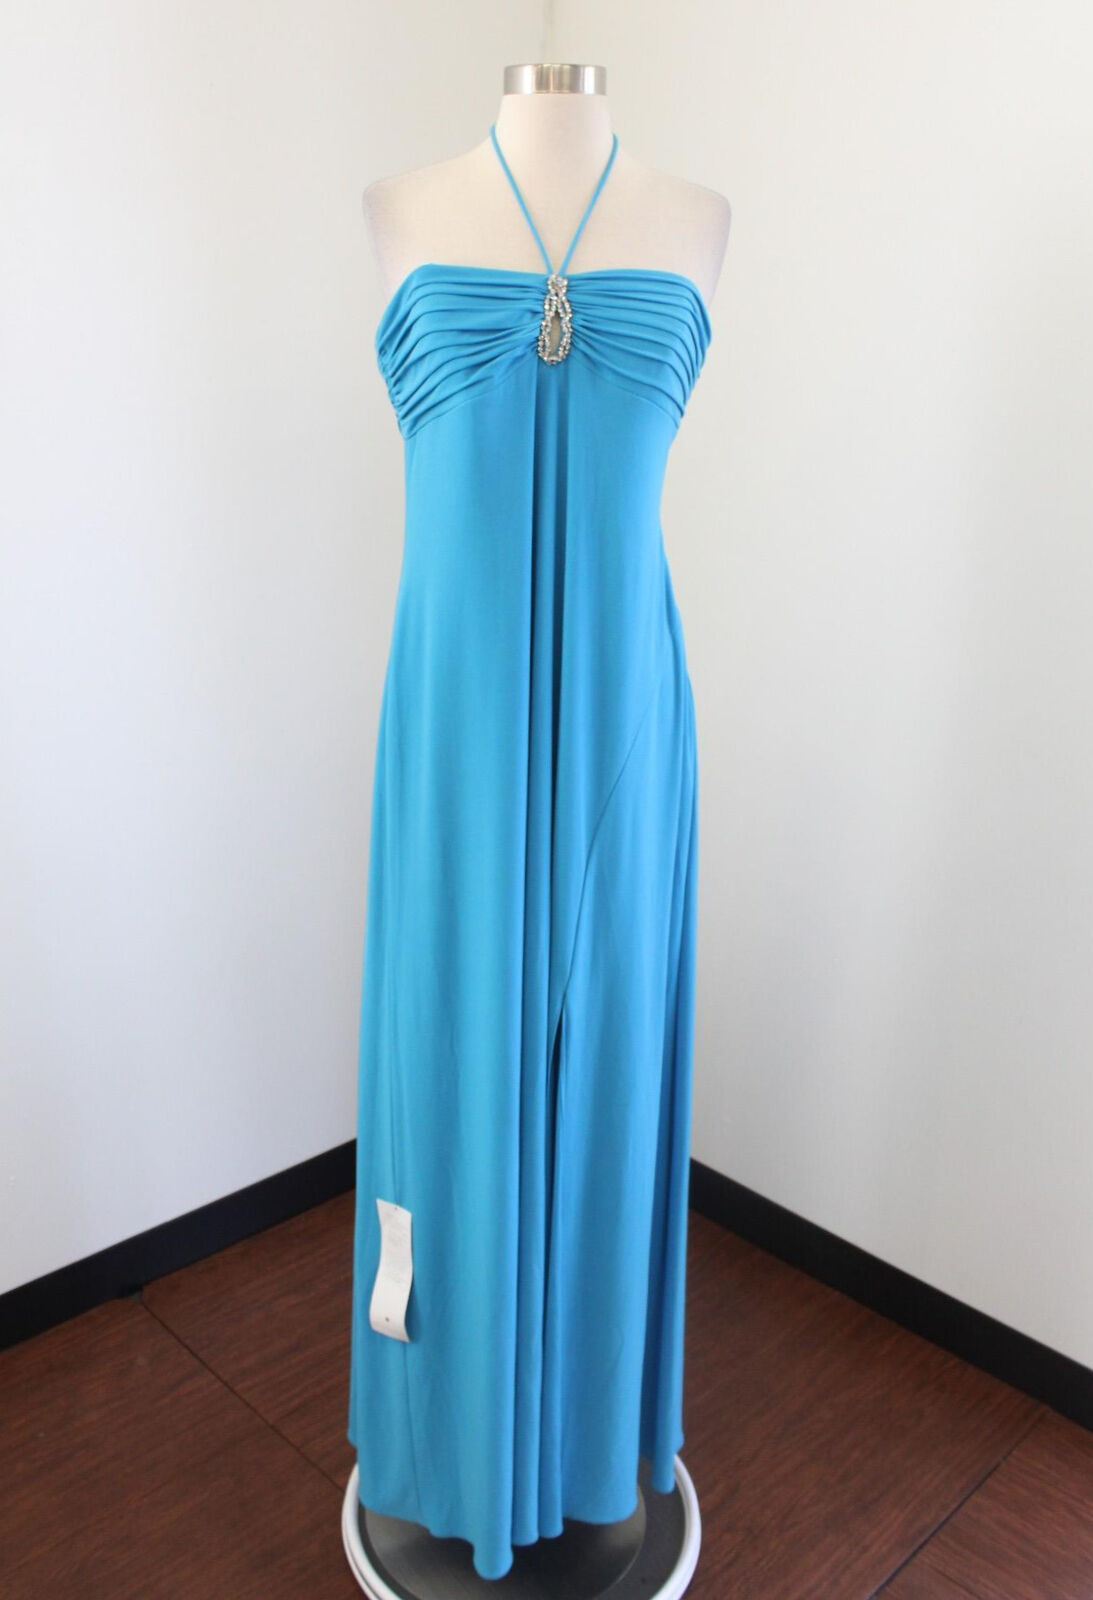 NWT Laundry by Shelli Shelli Shelli Segal bluee Beaded Halter Gown Evening Dress Formal Size L eef8f8